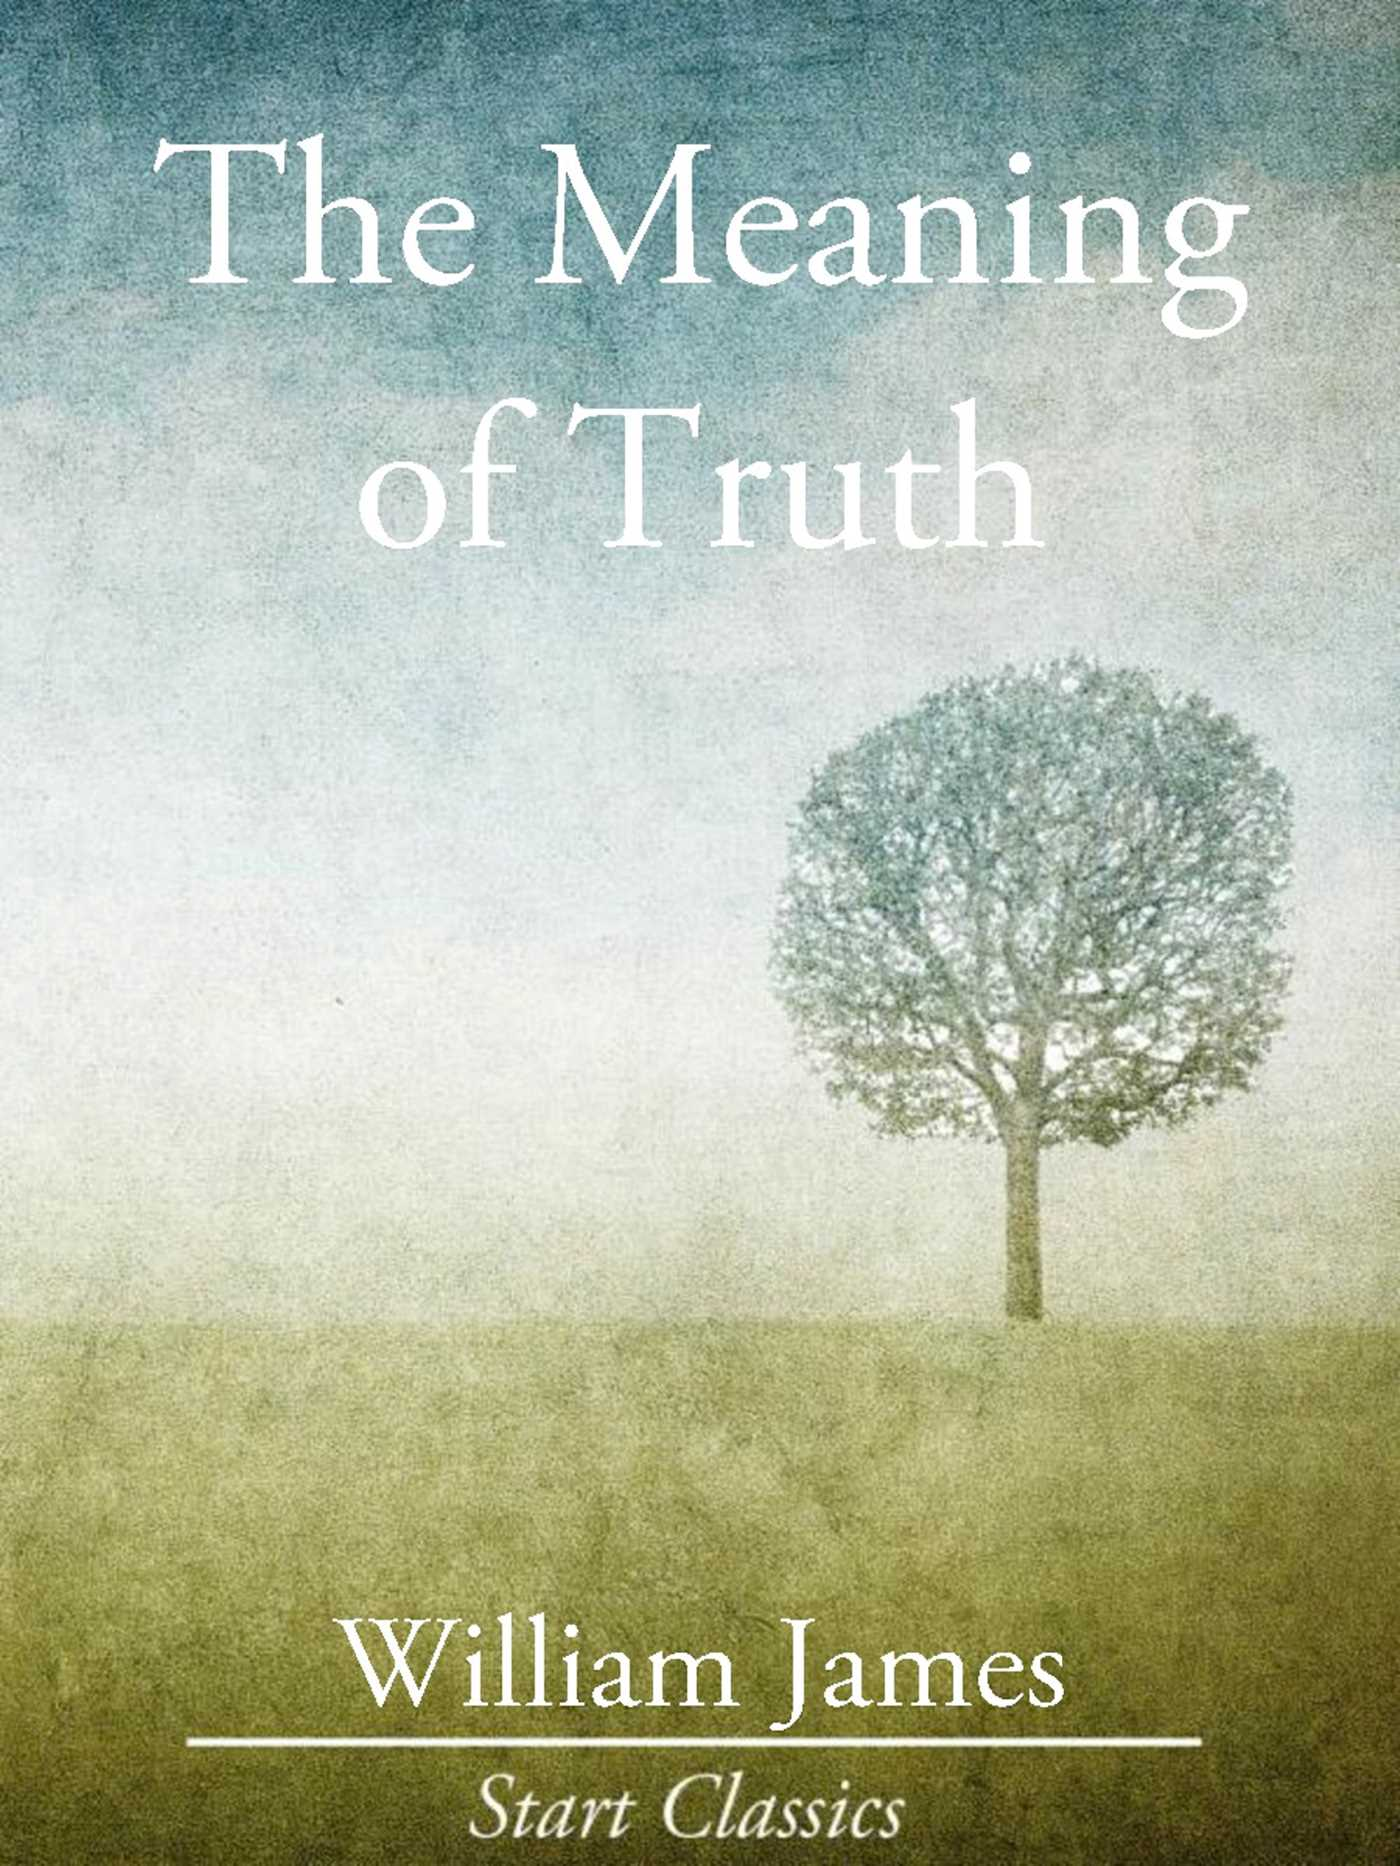 Book Cover Forros Meaning ~ The meaning of truth ebook by dr william james official